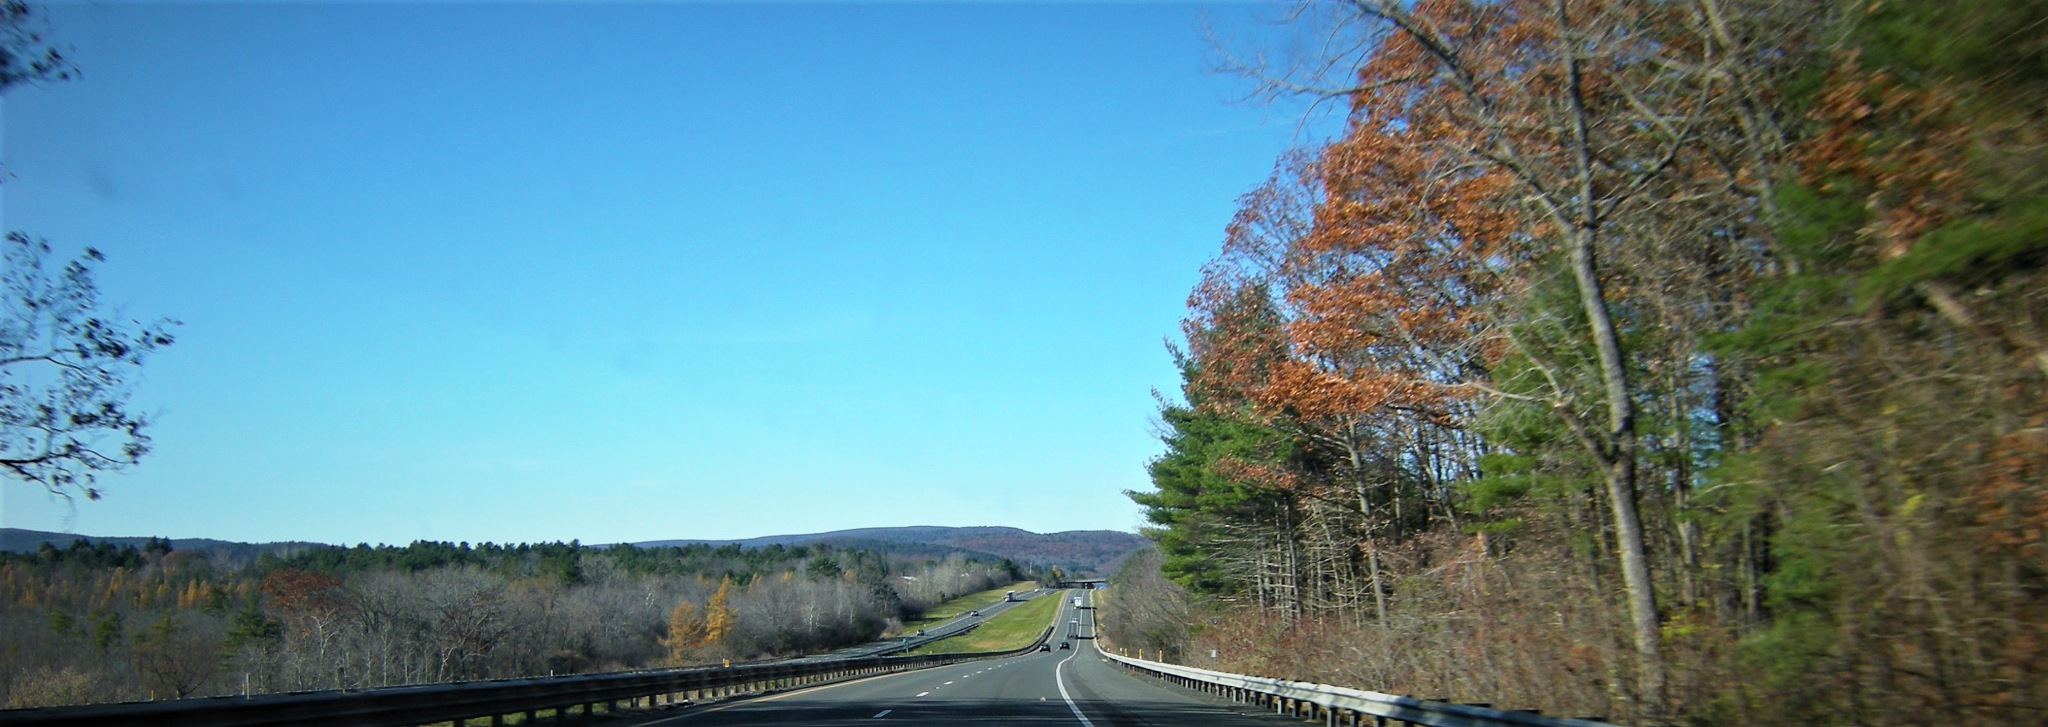 On the road Trip to New York State by Miguelvillega